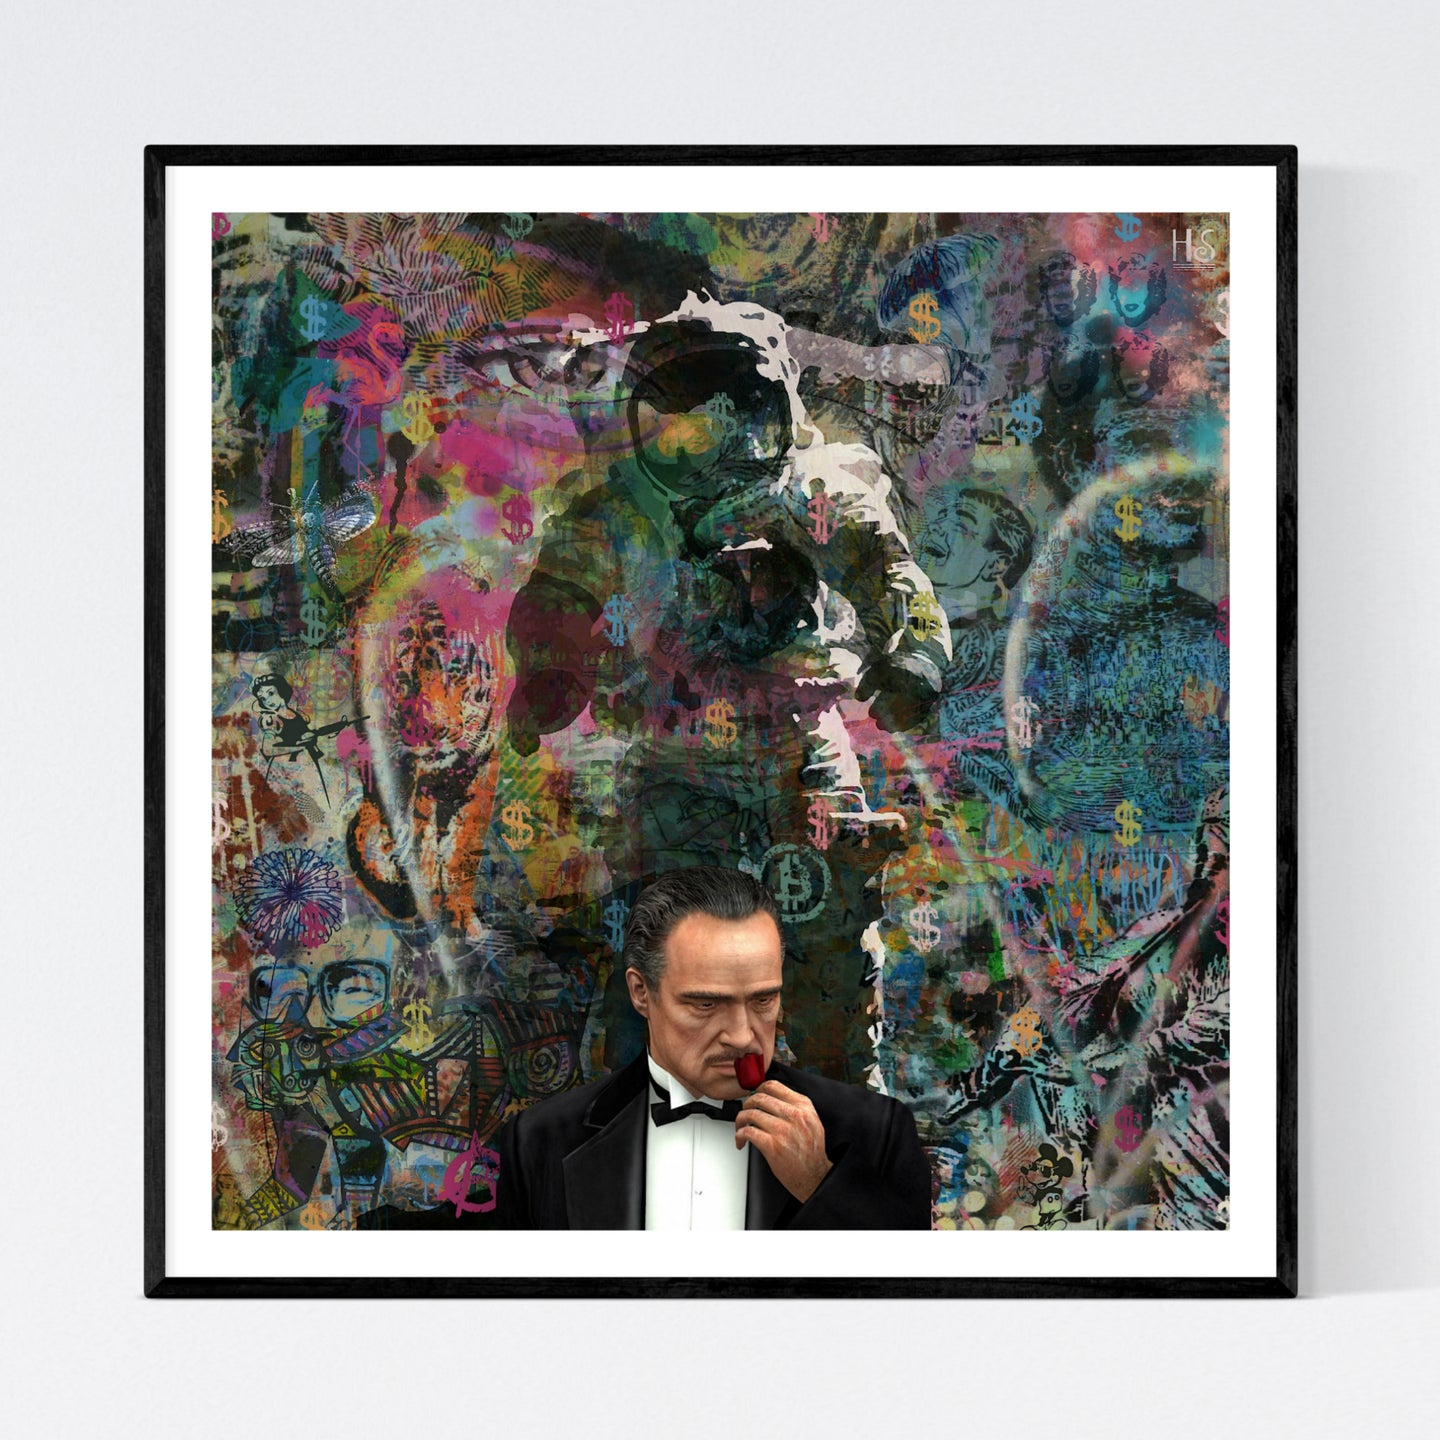 The Godfather - moderne pop art kunst af billedkunstneren Helt Sort